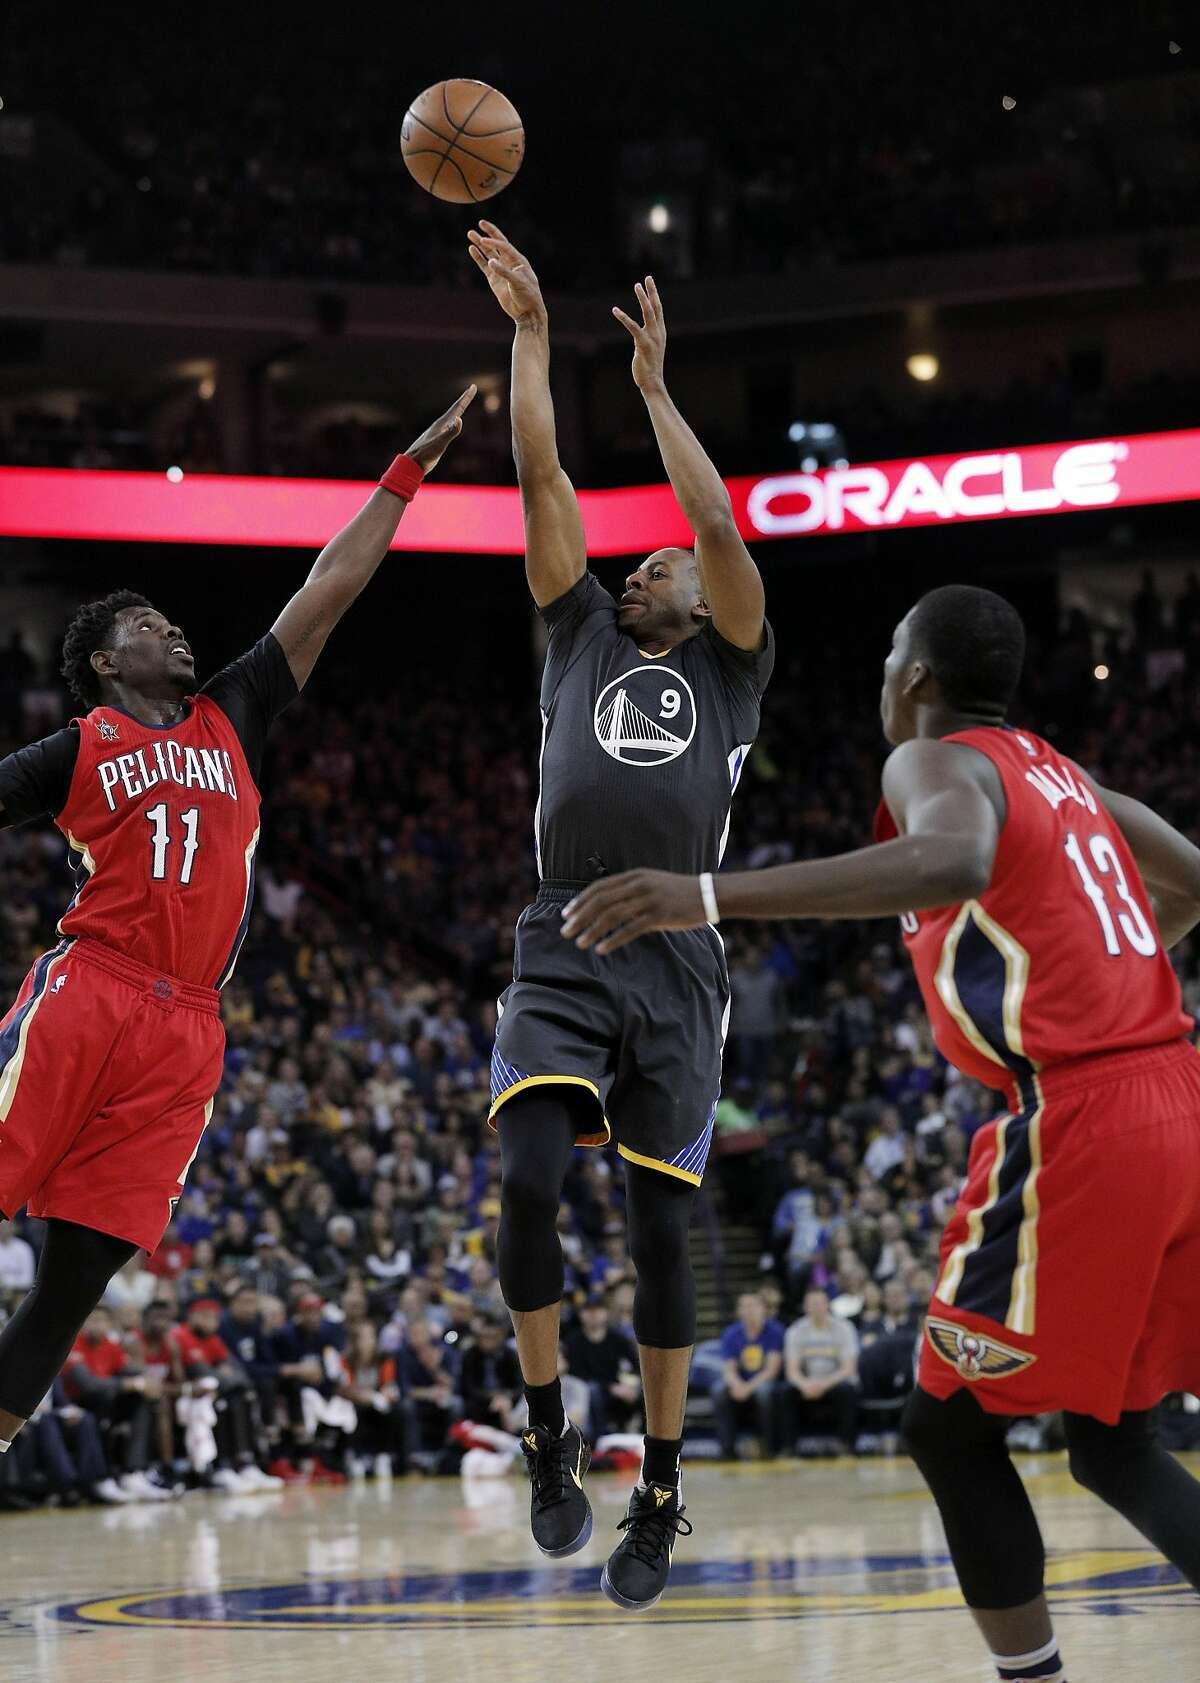 Andre Iguodala (9) puts up a buzzer beater to end the first quarter as the Golden State Warriors played the New Orleans Pelicans at Oracle Arena in Oakland, Calif., on Saturday, April 8, 2017.